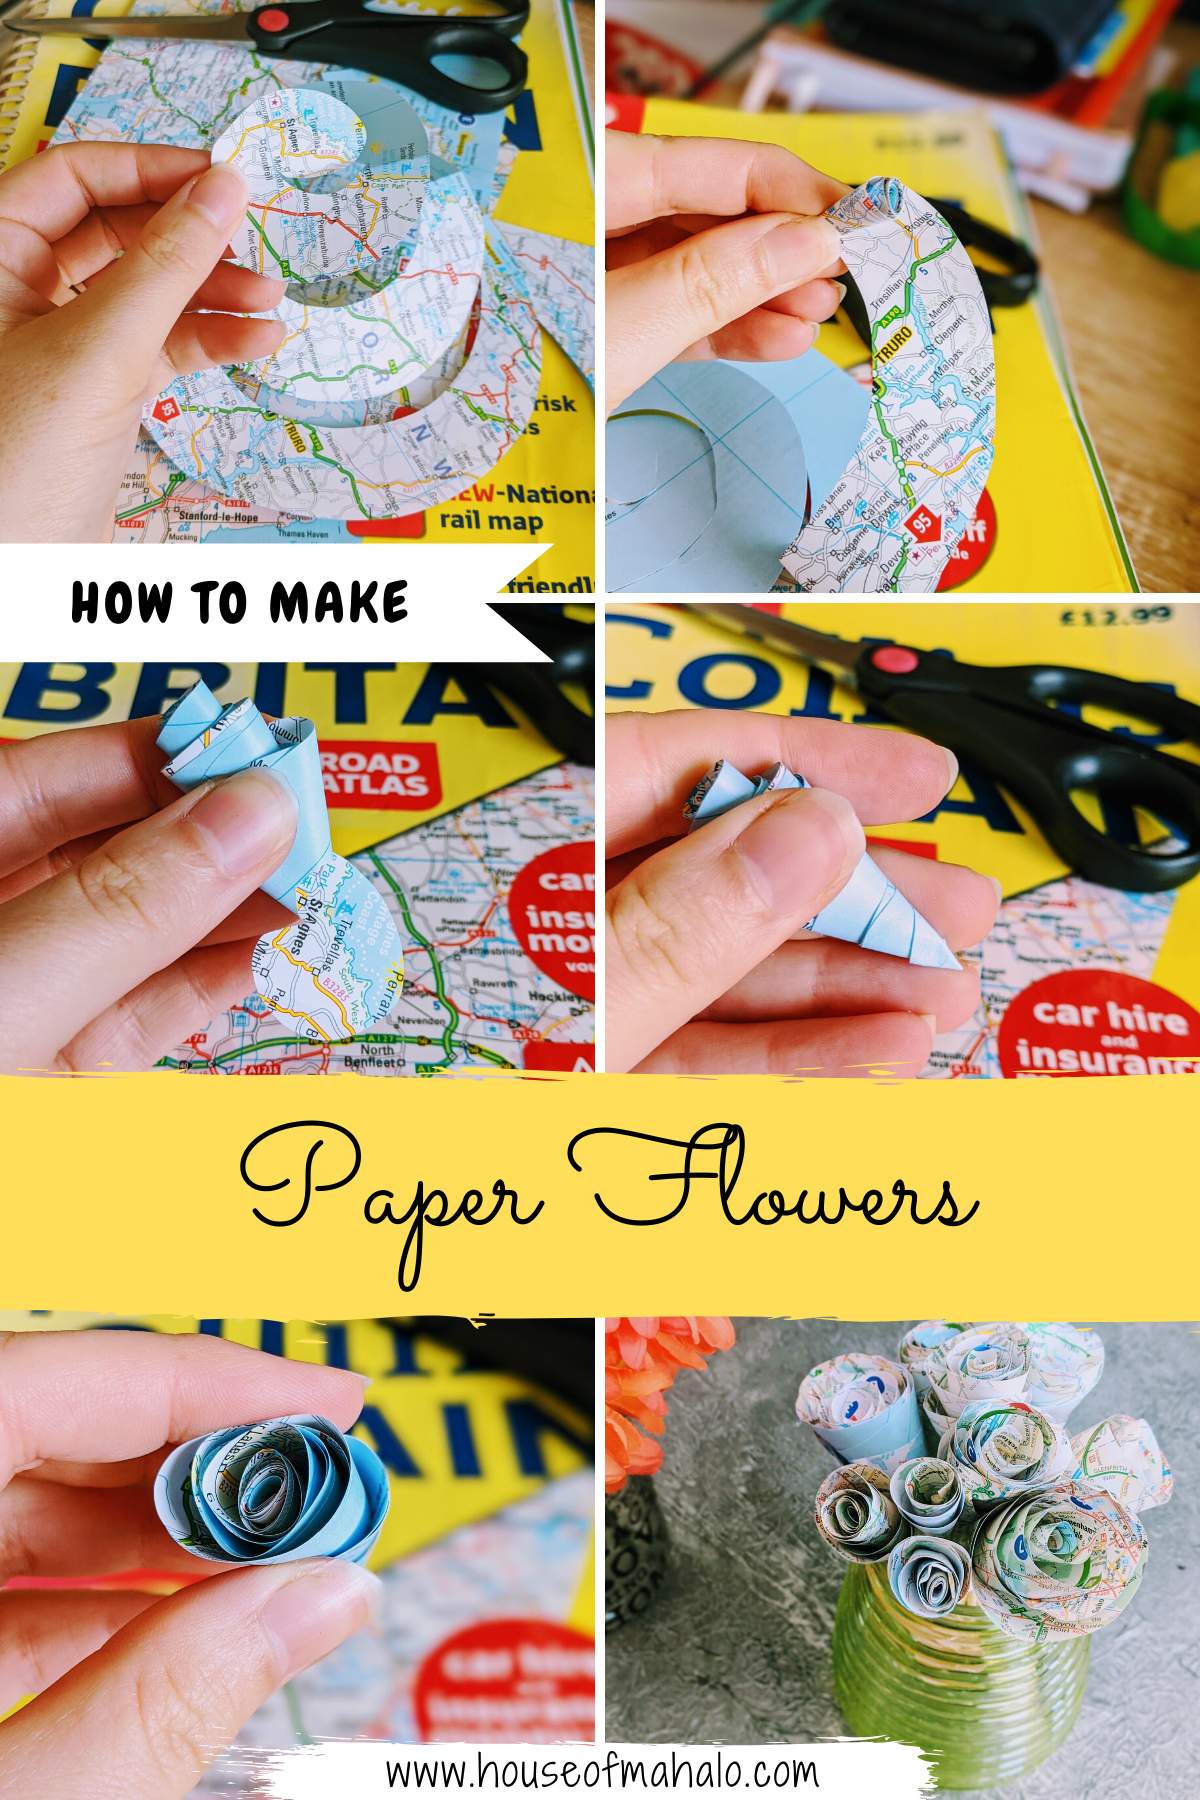 How To Make Paper Flowers - Easy DIY Swirl Roses